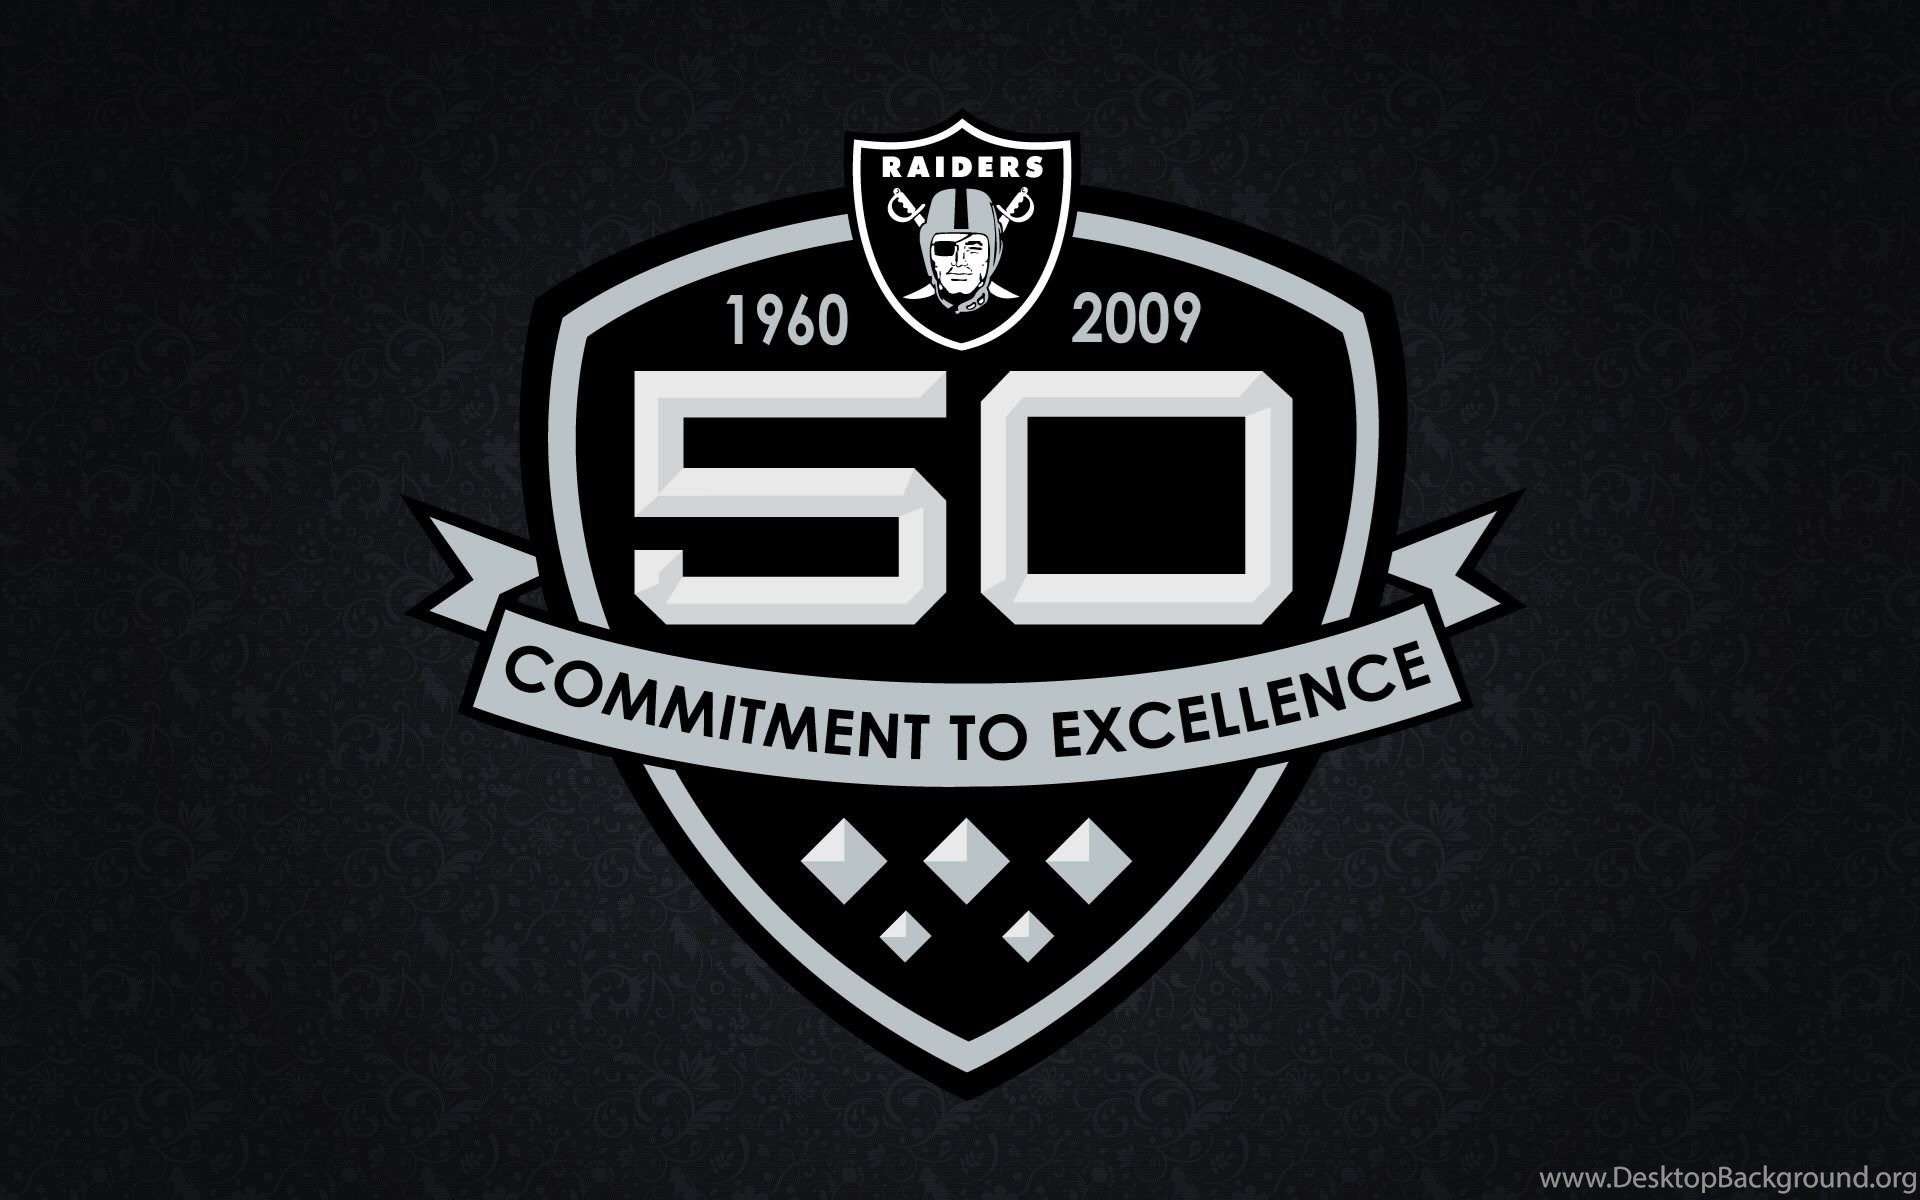 Raiders Logo Wallpaper - Oakland Raiders 50th Anniversary , HD Wallpaper & Backgrounds